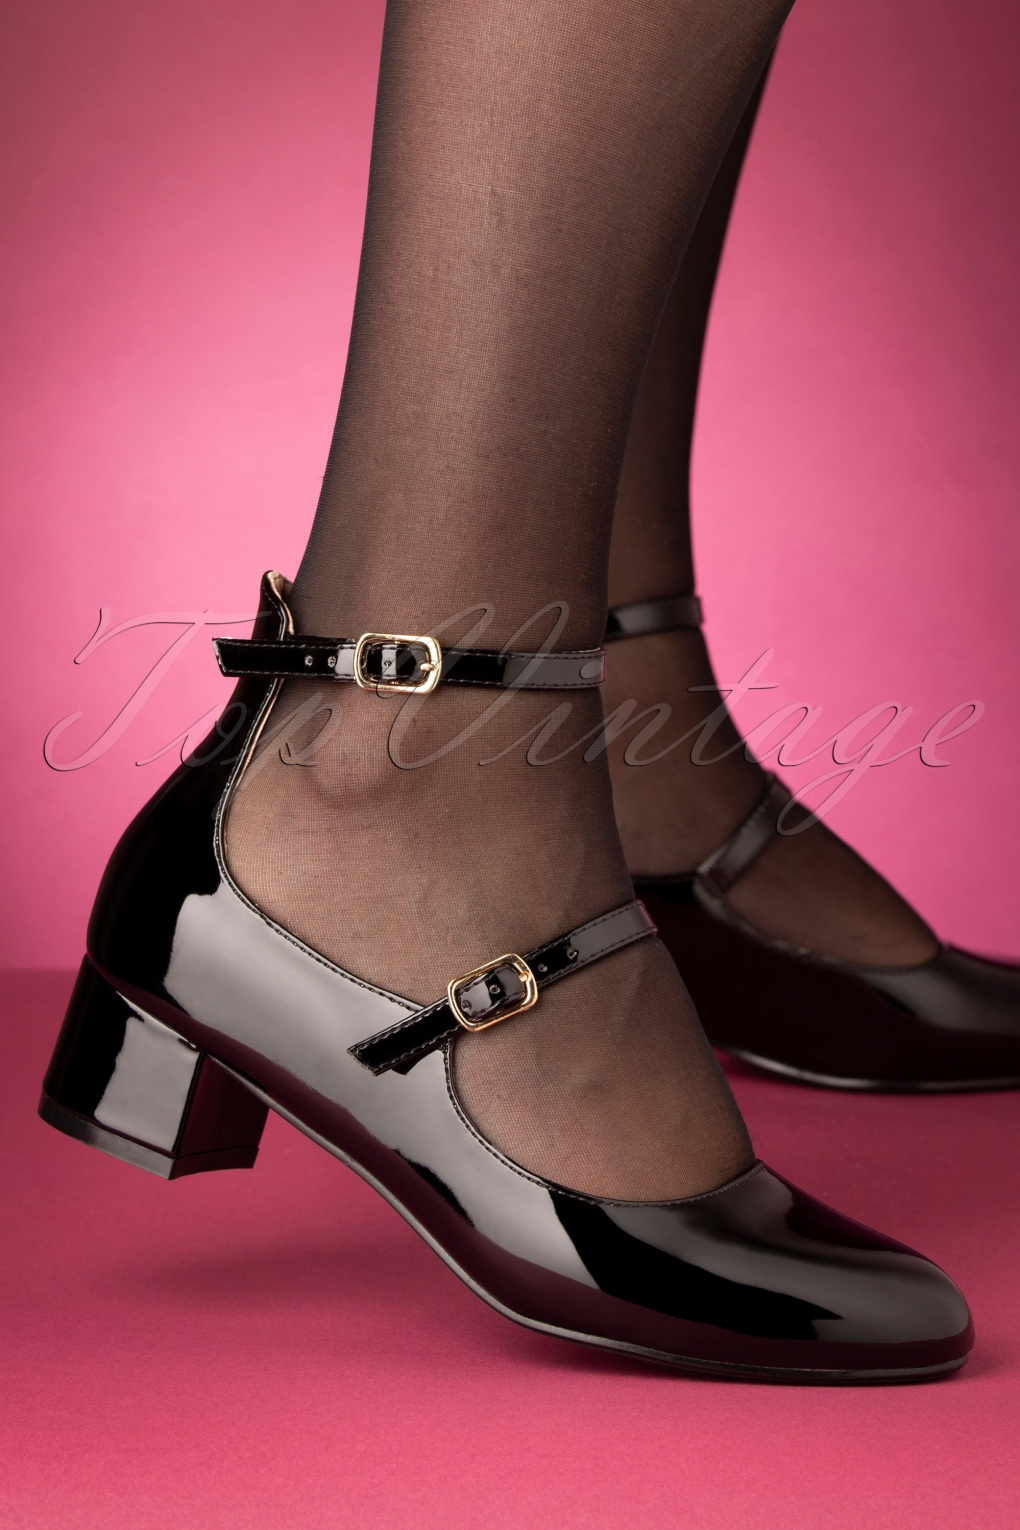 60s Shoes, Go Go Boots 60s Federica Block Heel Pumps in Glossy Black £51.51 AT vintagedancer.com